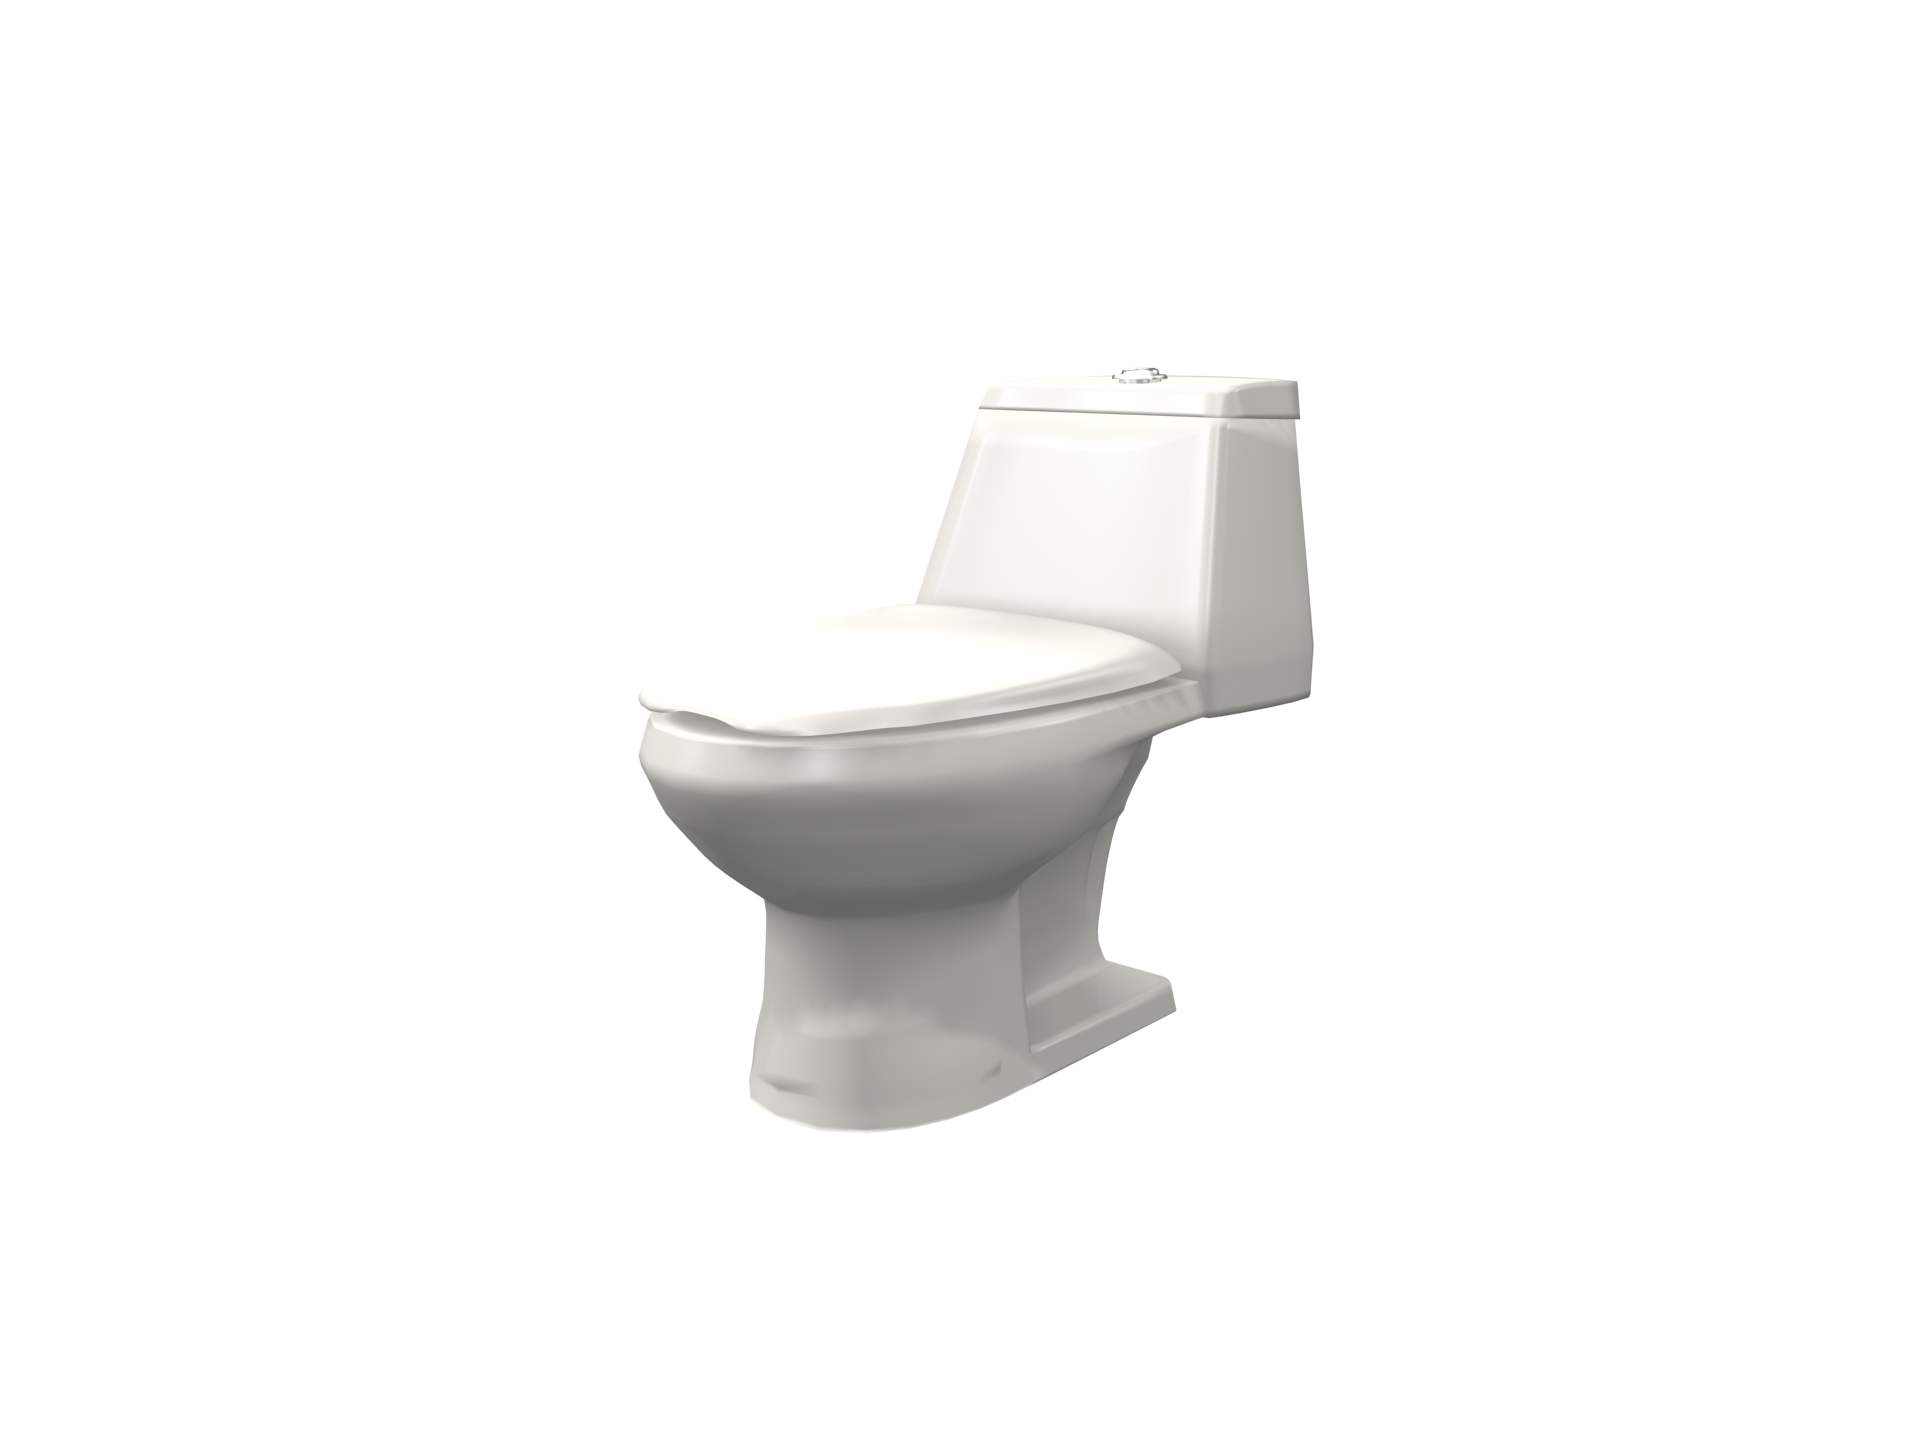 Bathroom u2013 toilet 014 3d model u2013 over millions vectors stock photos